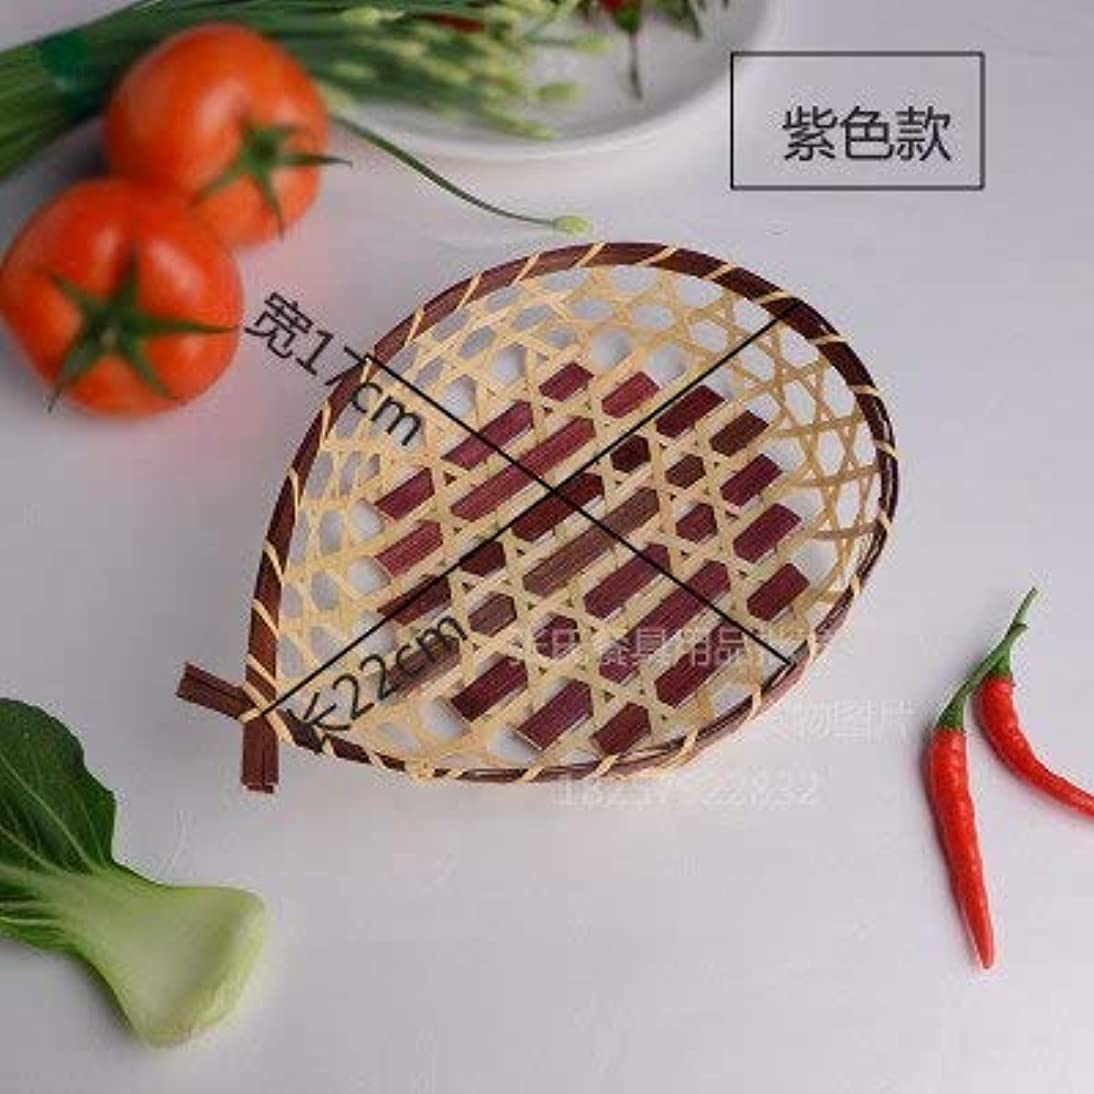 Dishes & Plates - Creative Personality Tableware Features El Fashion Bamboo Wood Ornaments - Dishes Bowls Only Black Plates Dishes Plates Spoon Wooden Dinner Cutlery Wood Plate Japanese Dish kwkb935866956884